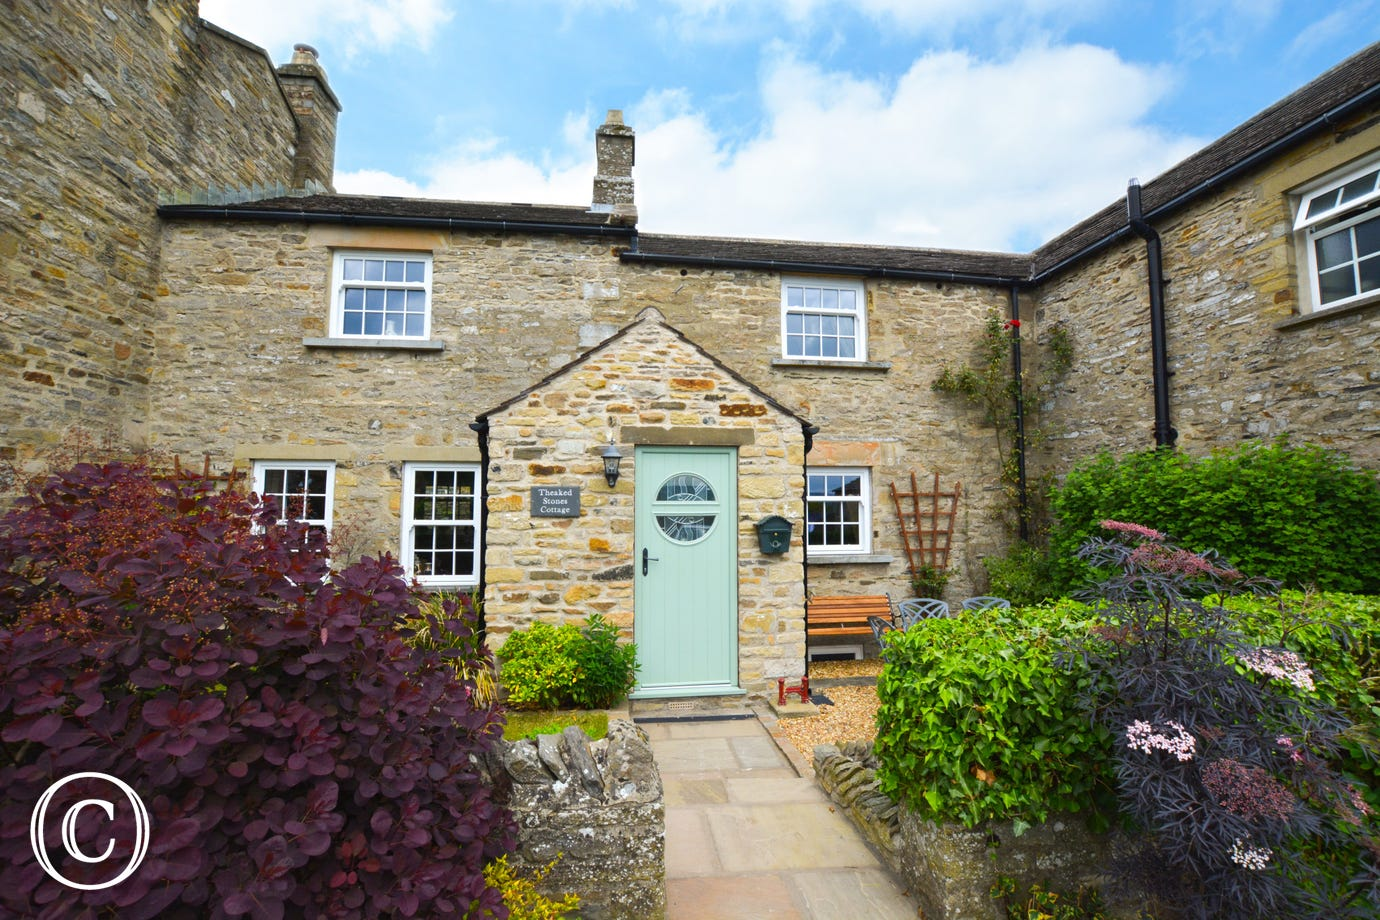 theaked stones cottage ds311 yorkshire holiday cottages rh yorkshireholidaycottages co uk